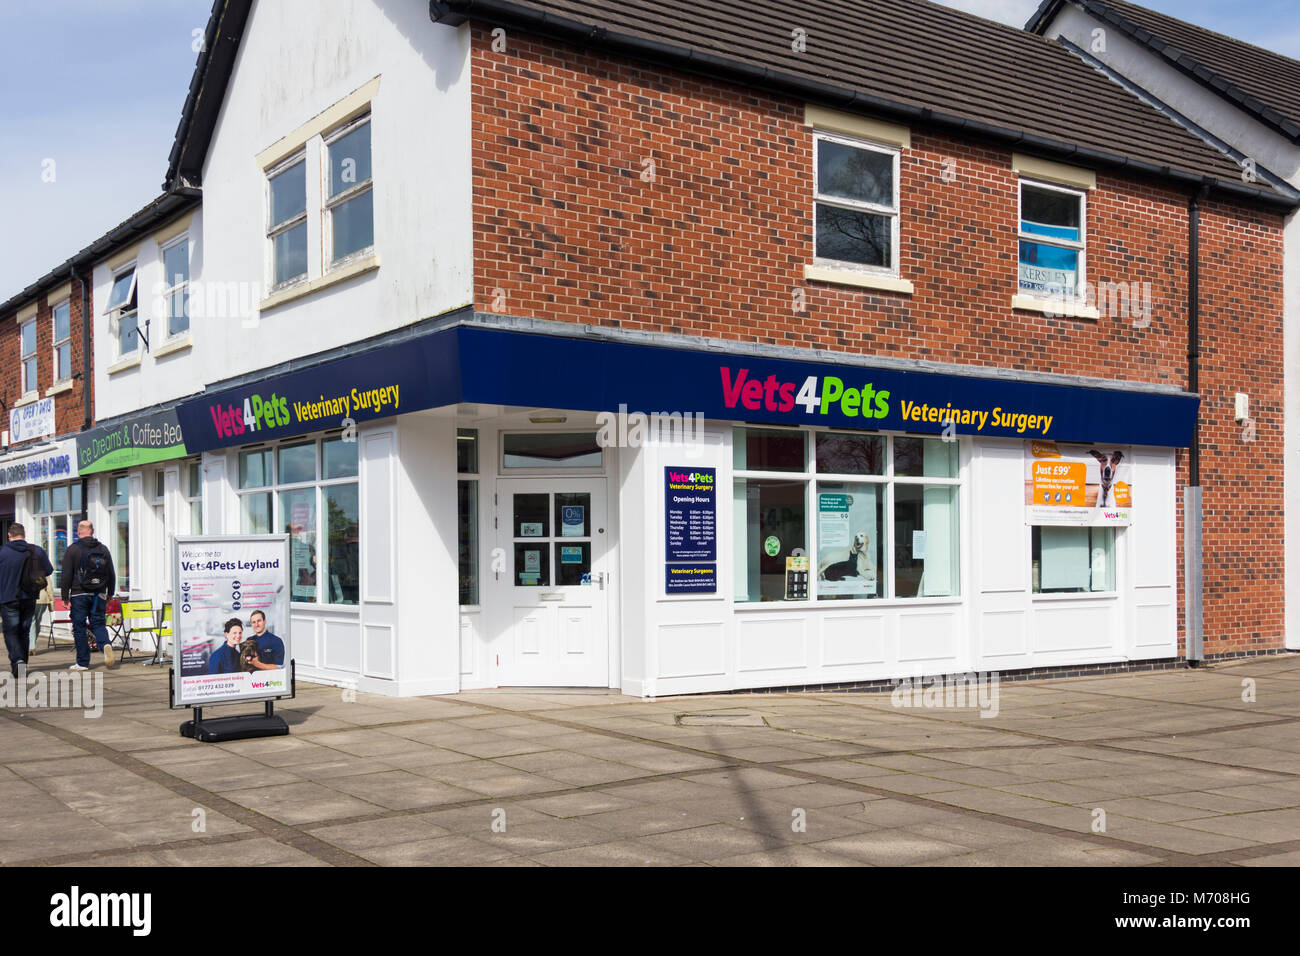 Vets4Pets veterinary surgery, Church Road, Leyland, Lancashire. Vets4Pets is a UK national chain of veterinary practices. - Stock Image